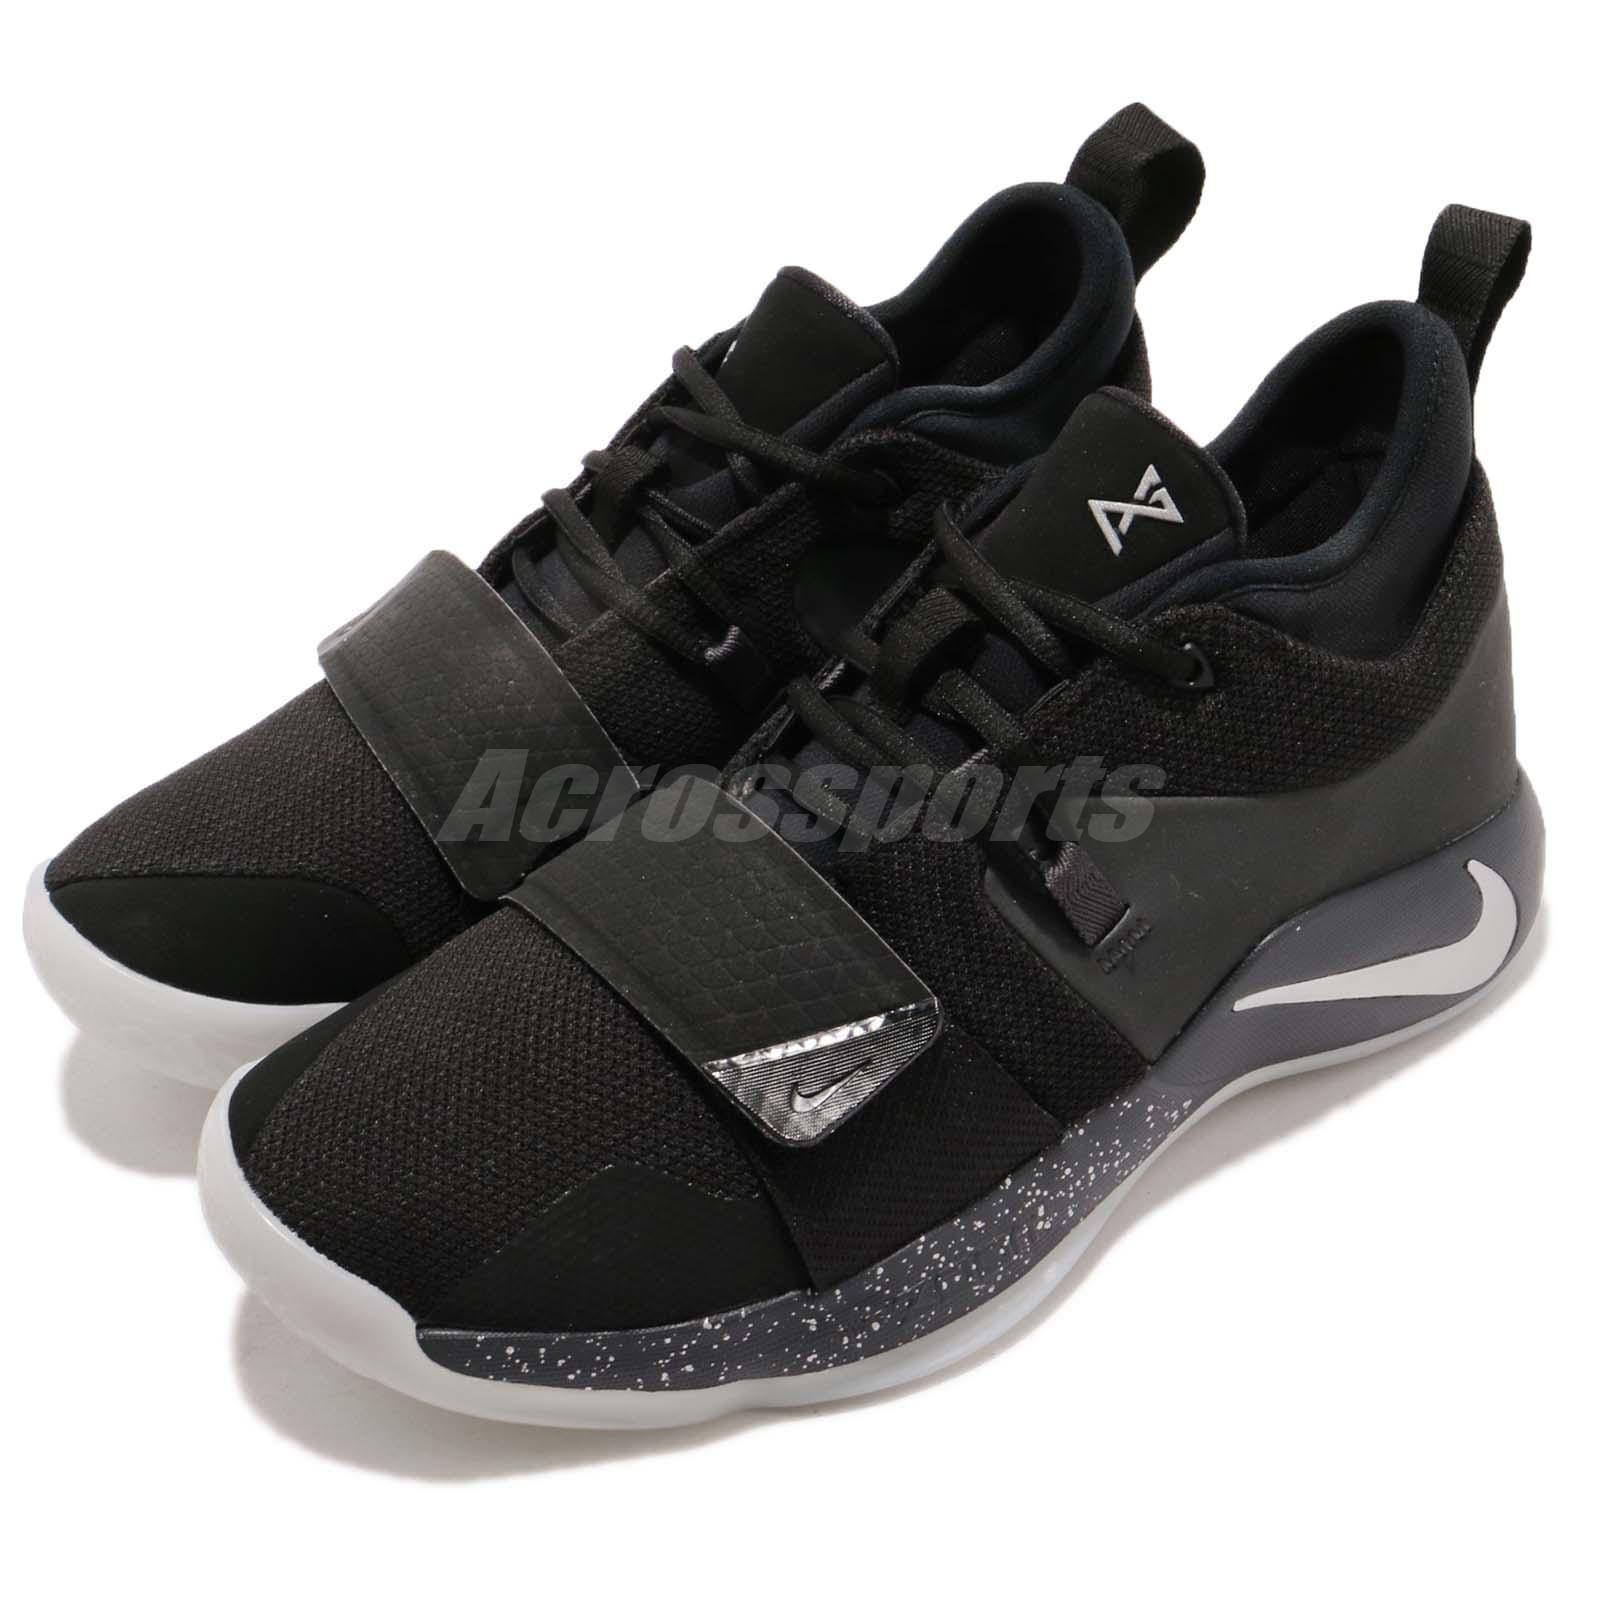 594877748e78 Details about Nike PG 2.5 EP Paul George Anthracite Black Men Basketball  Shoes BQ8453-004